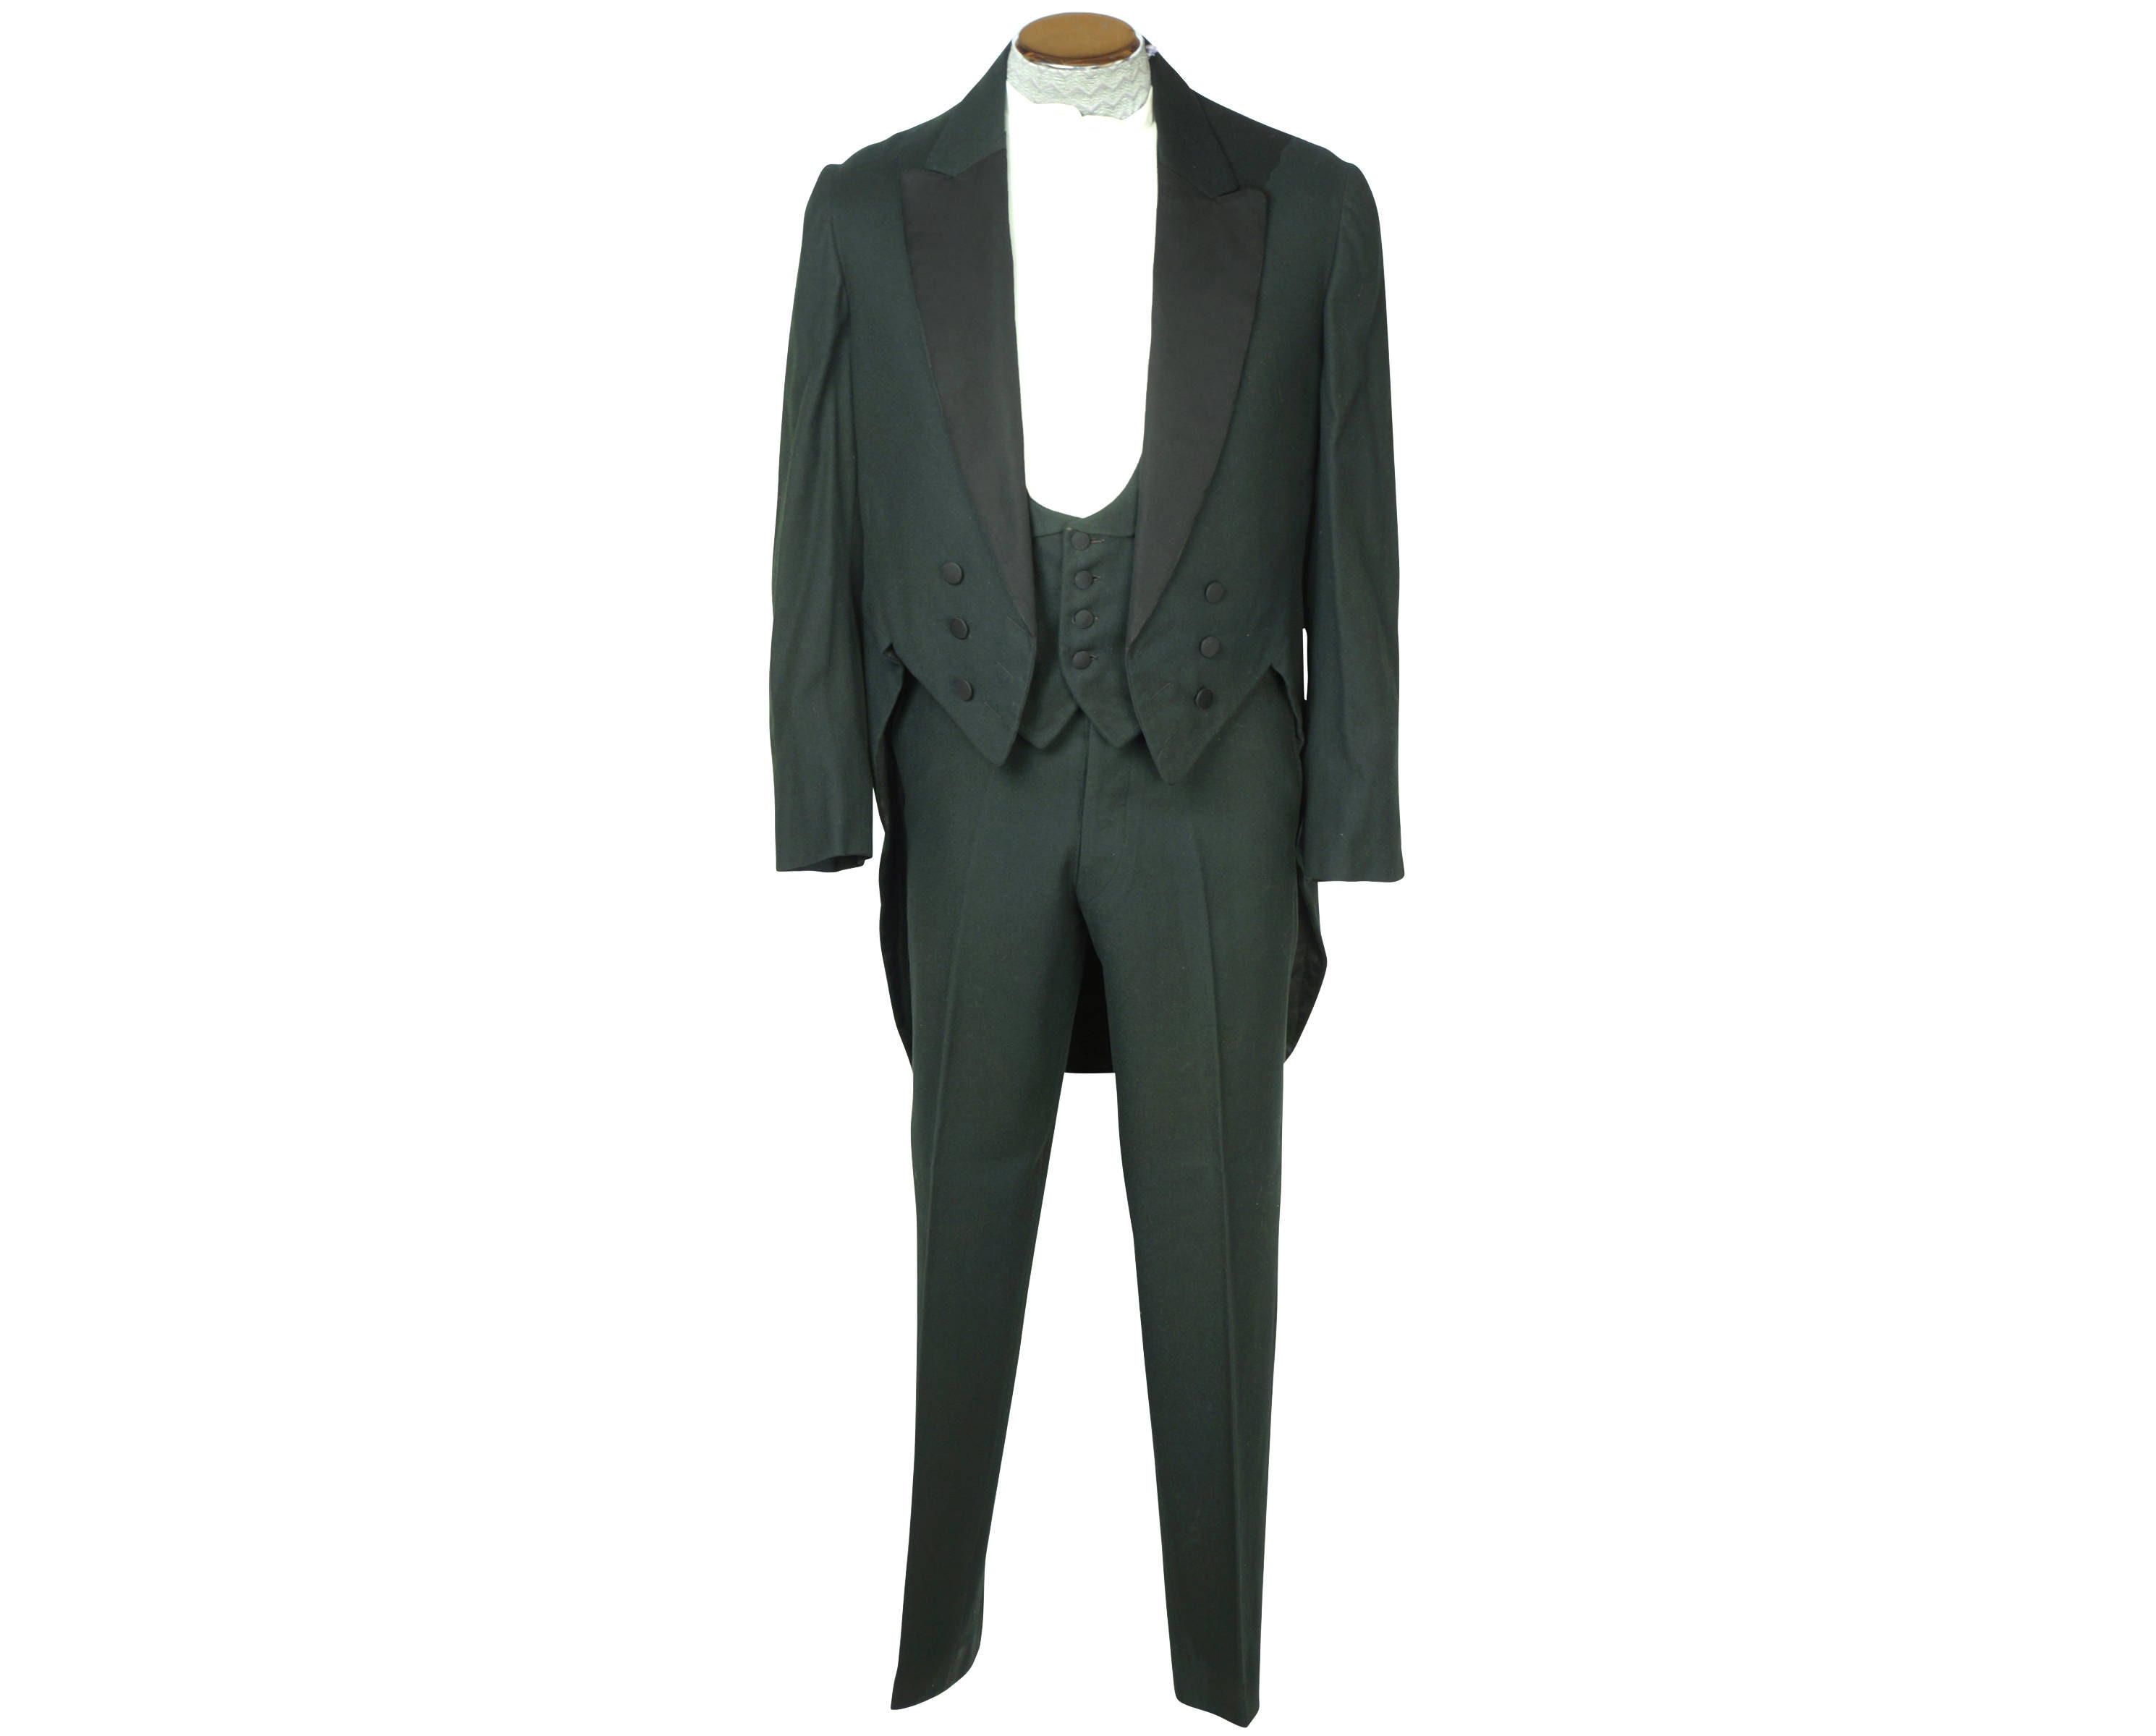 New 1930s Mens Fashion Ties Antique Mens Tuxedo Formal Tails With Waistcoat  Pants Sz M $45.00 AT vintagedancer.com